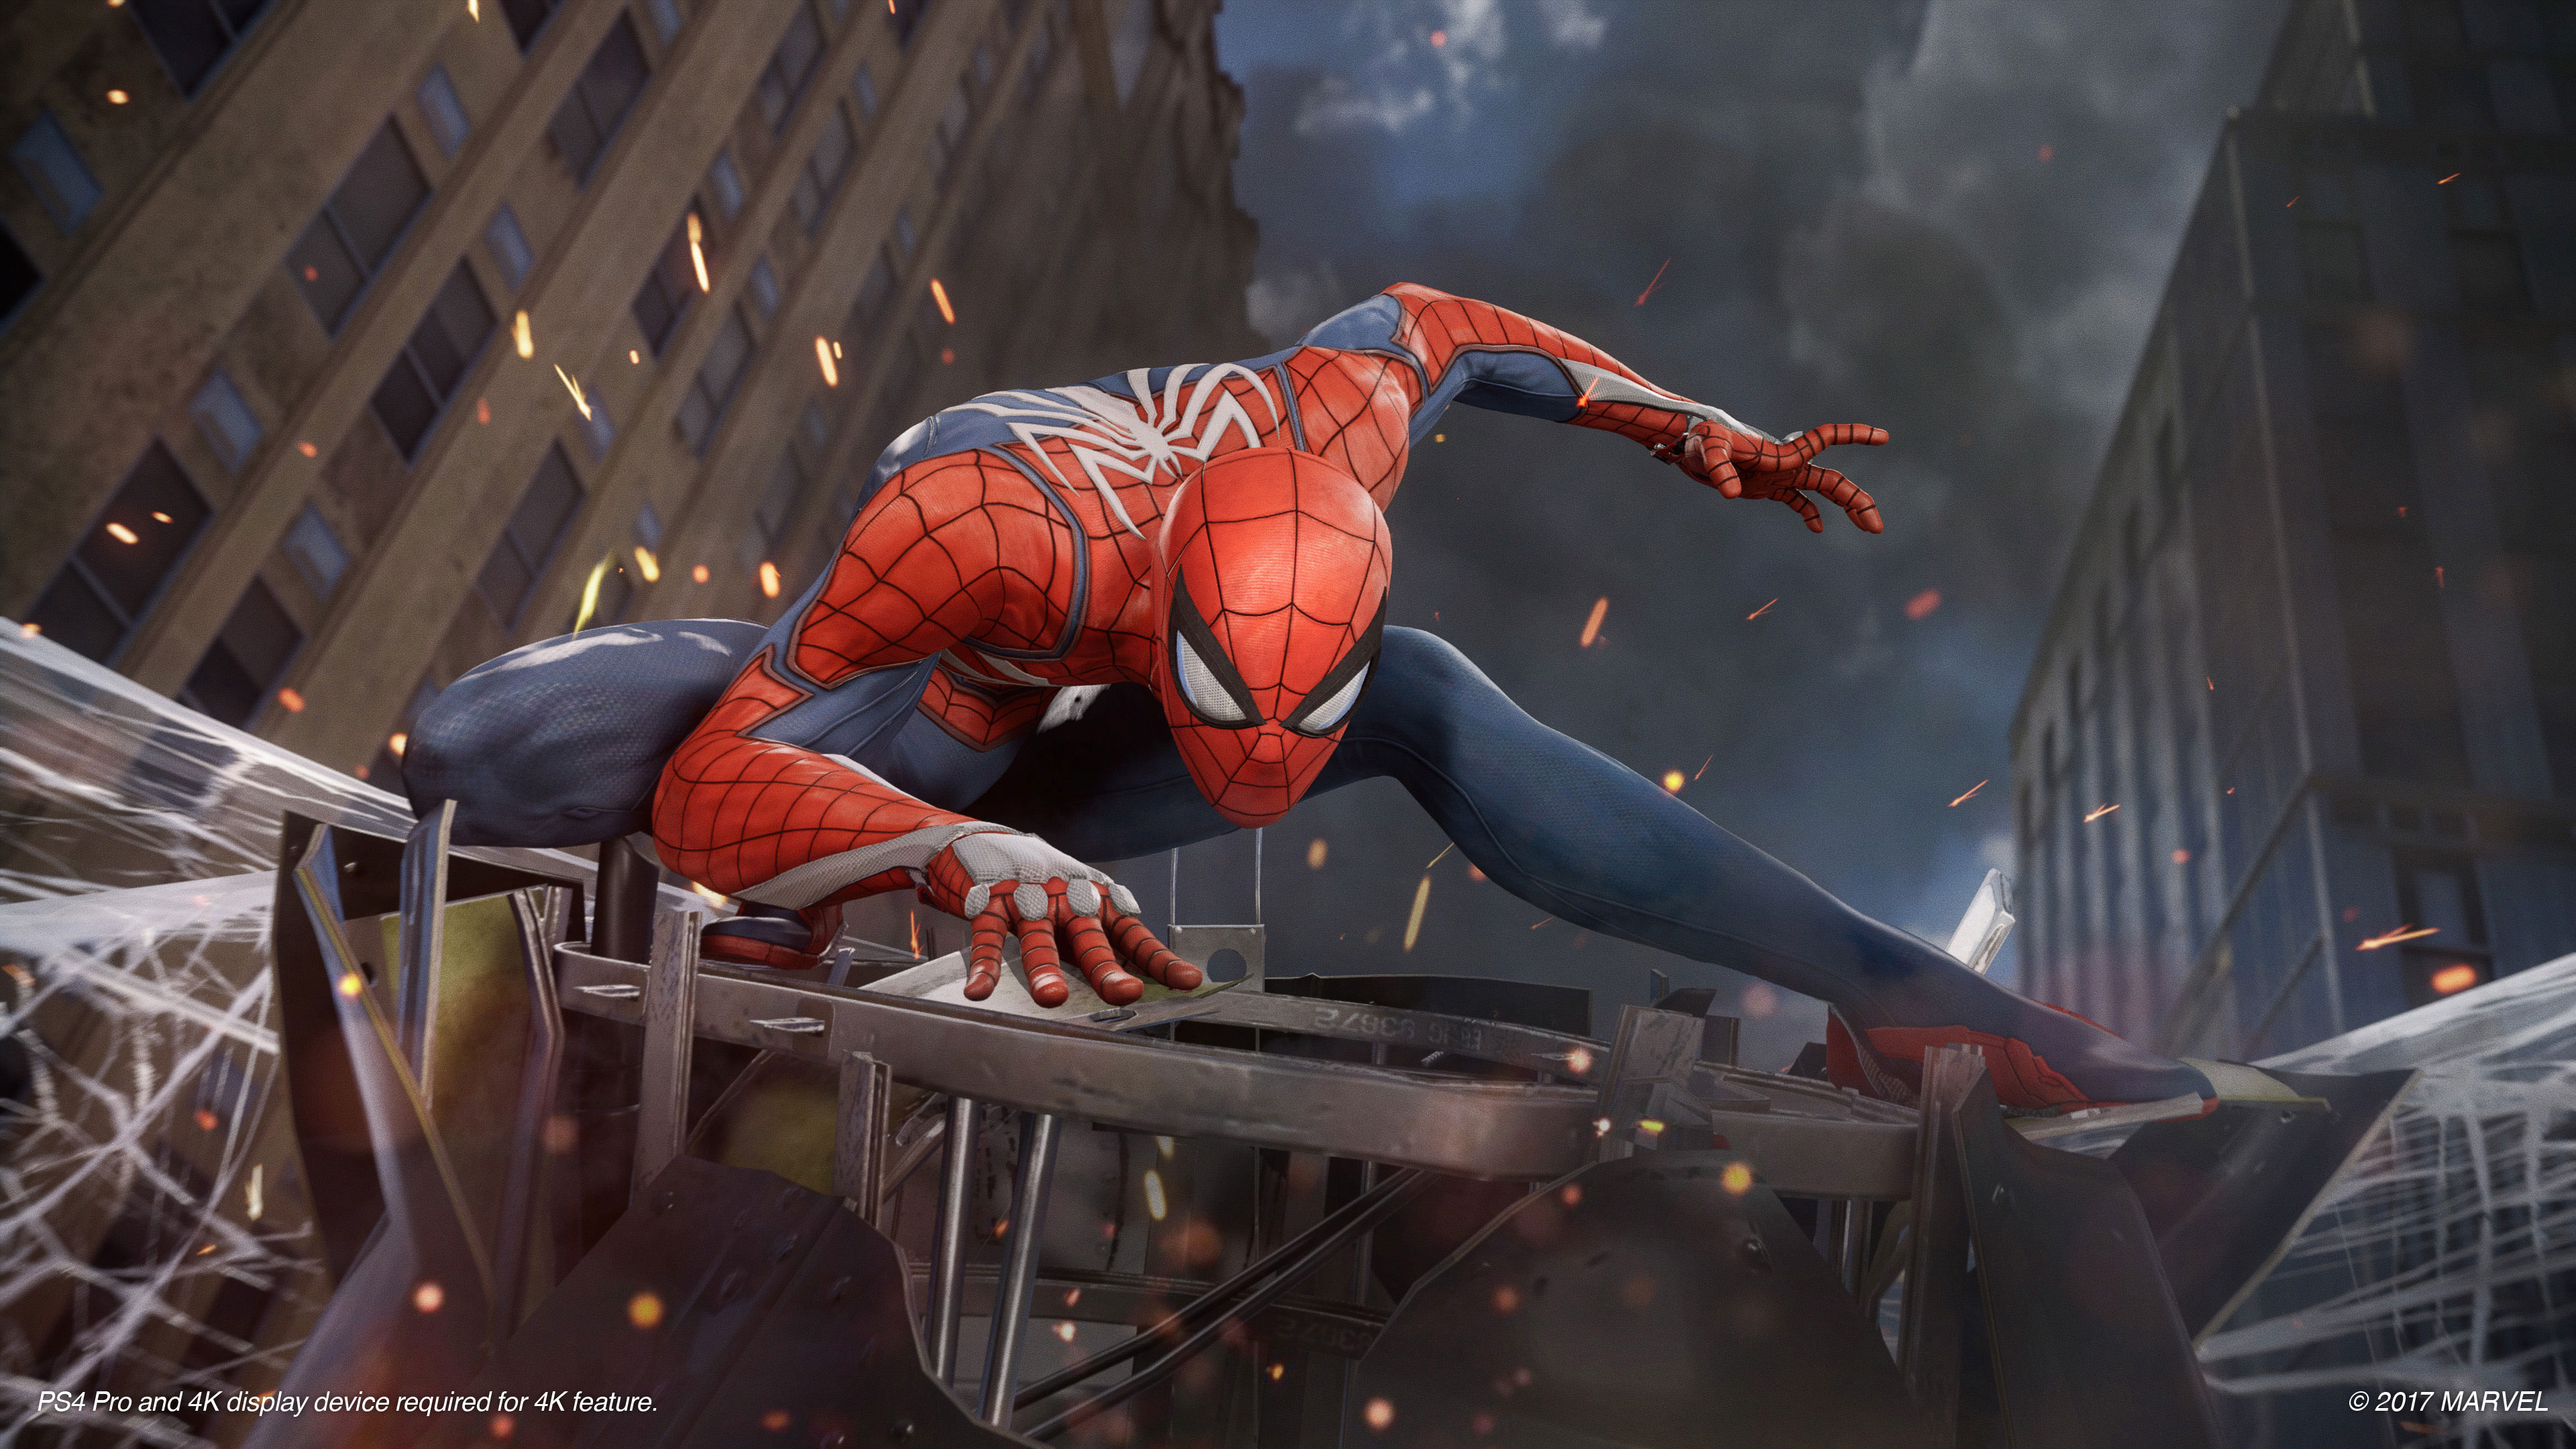 Media asset (photo, screenshot, or image in full size) related to contents posted at 3dfxzone.it | Image Name: 3D-Analyze-Hero-From-Spider-Man_PS4_E3_2017_Hero.jpg